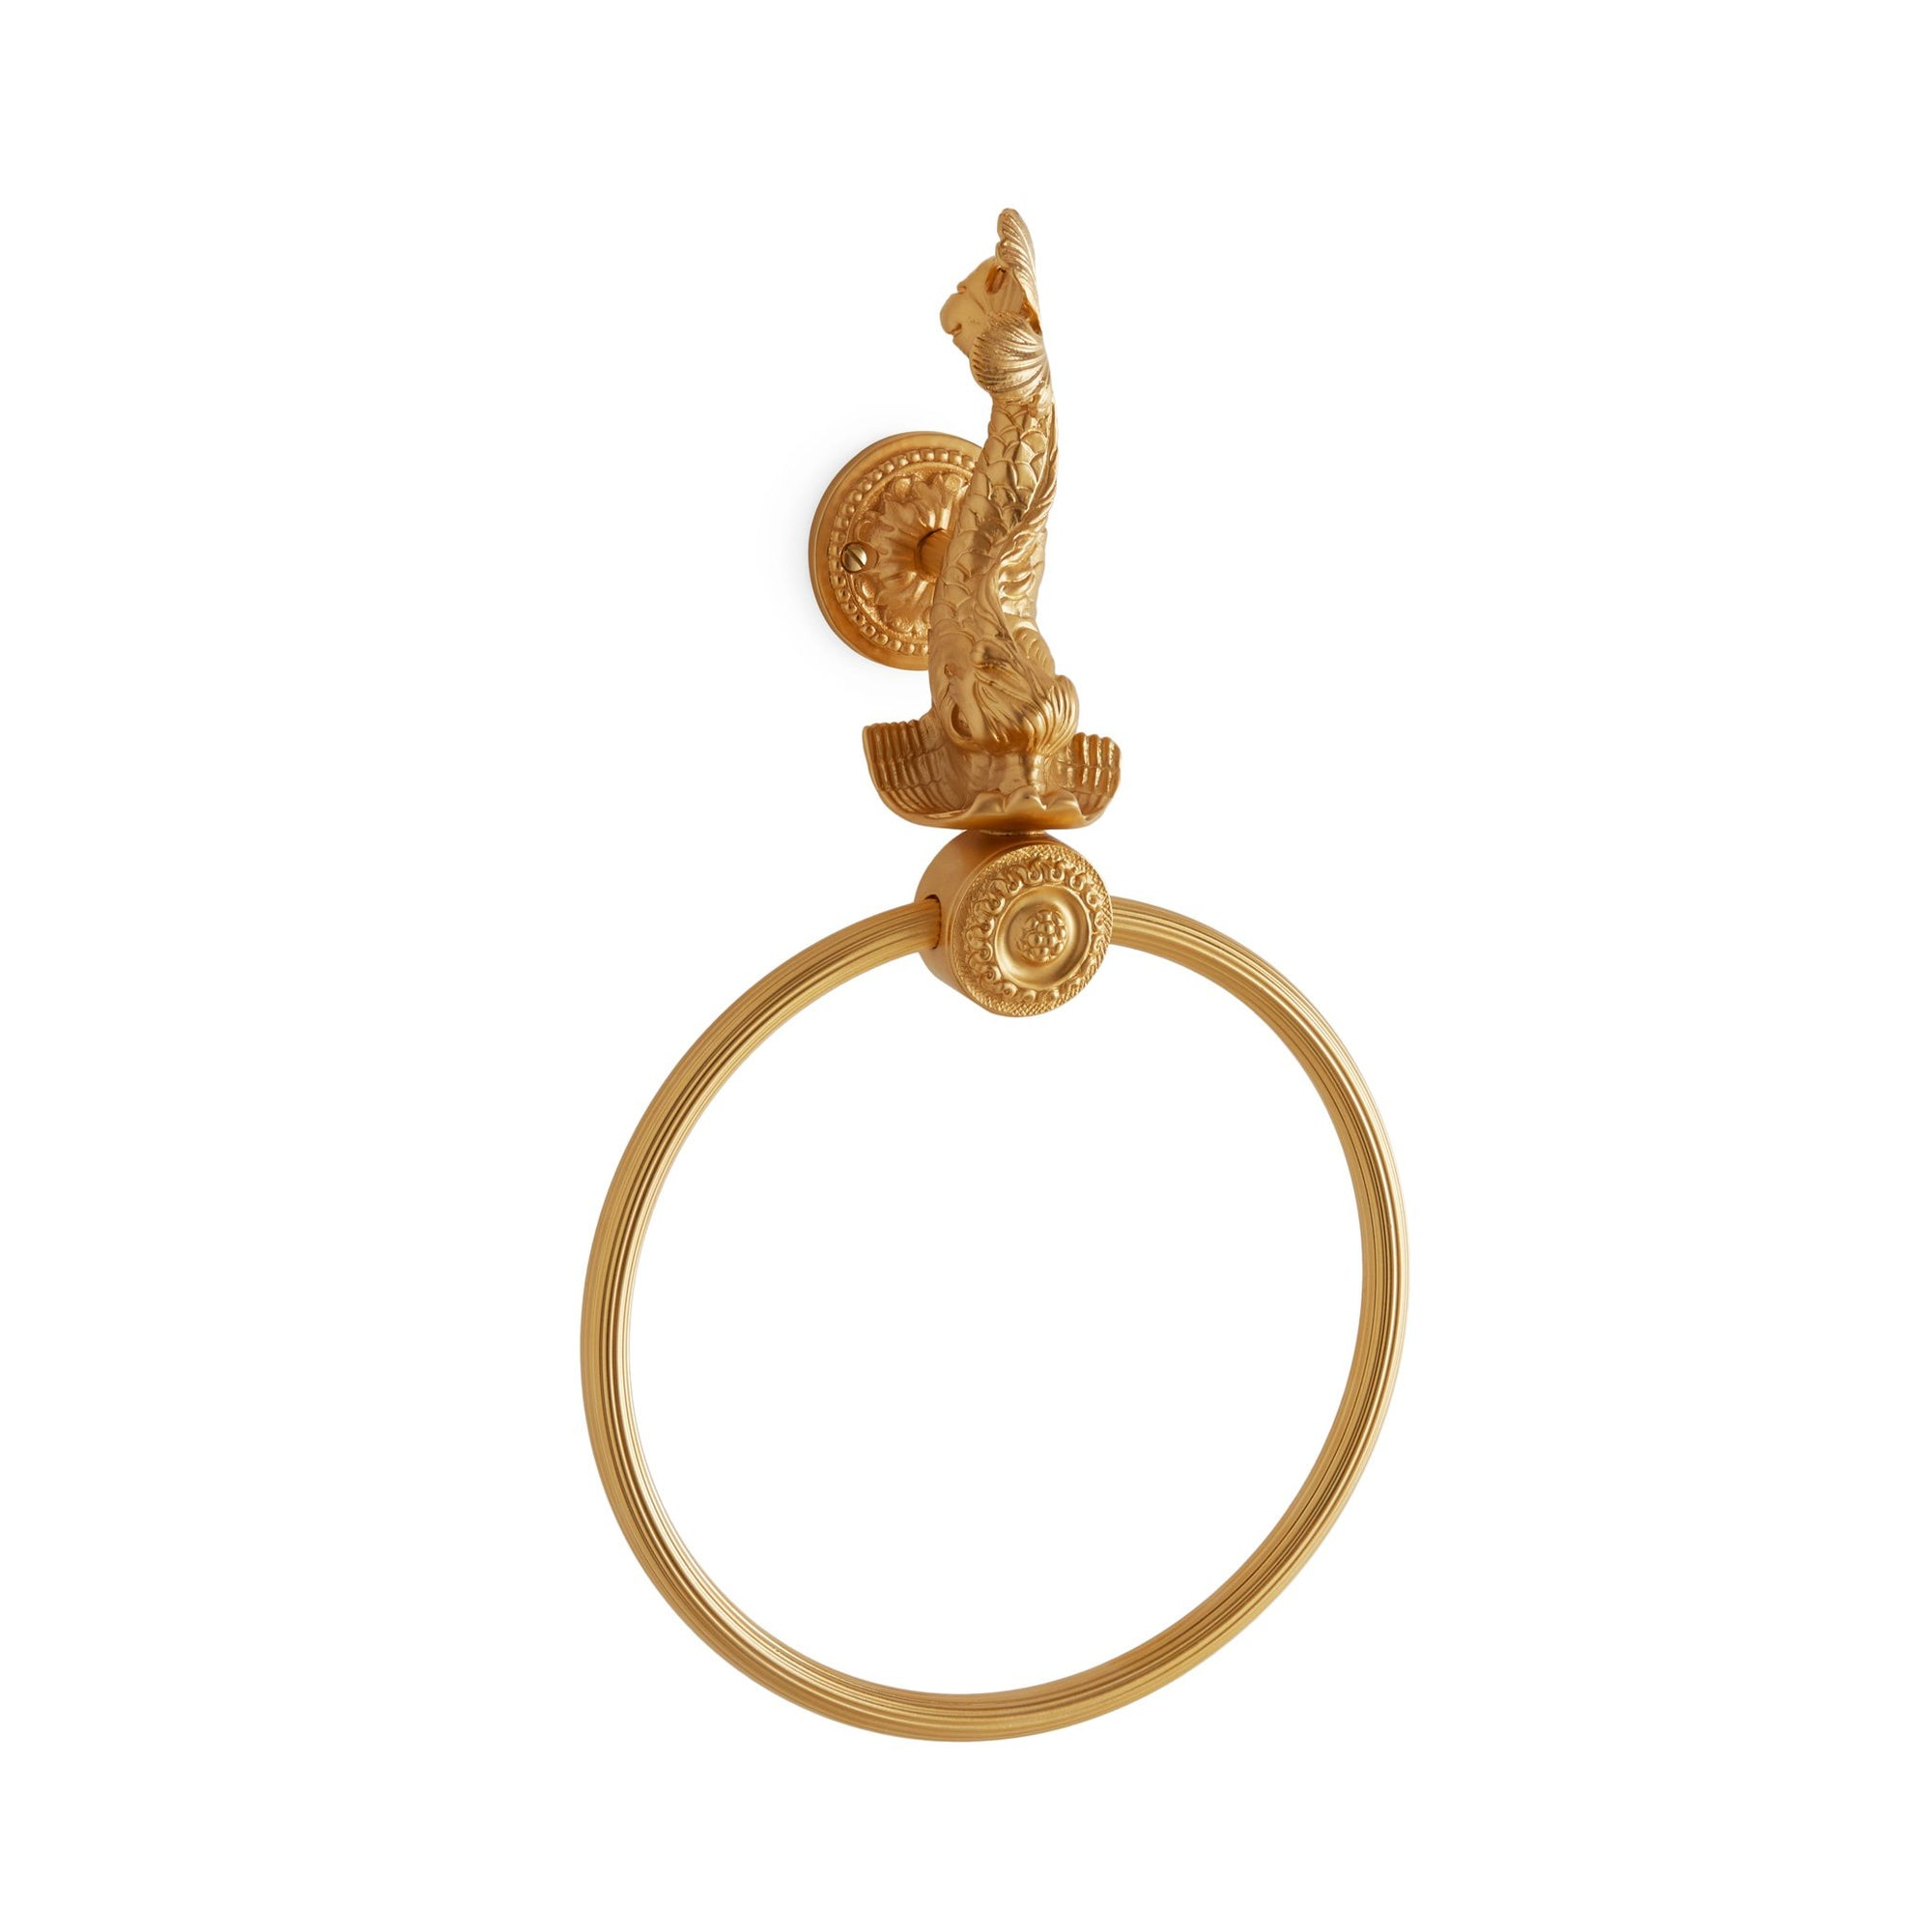 3423-GP Sherle Wagner International Dolphin Towel Ring in Gold Plate metal finish